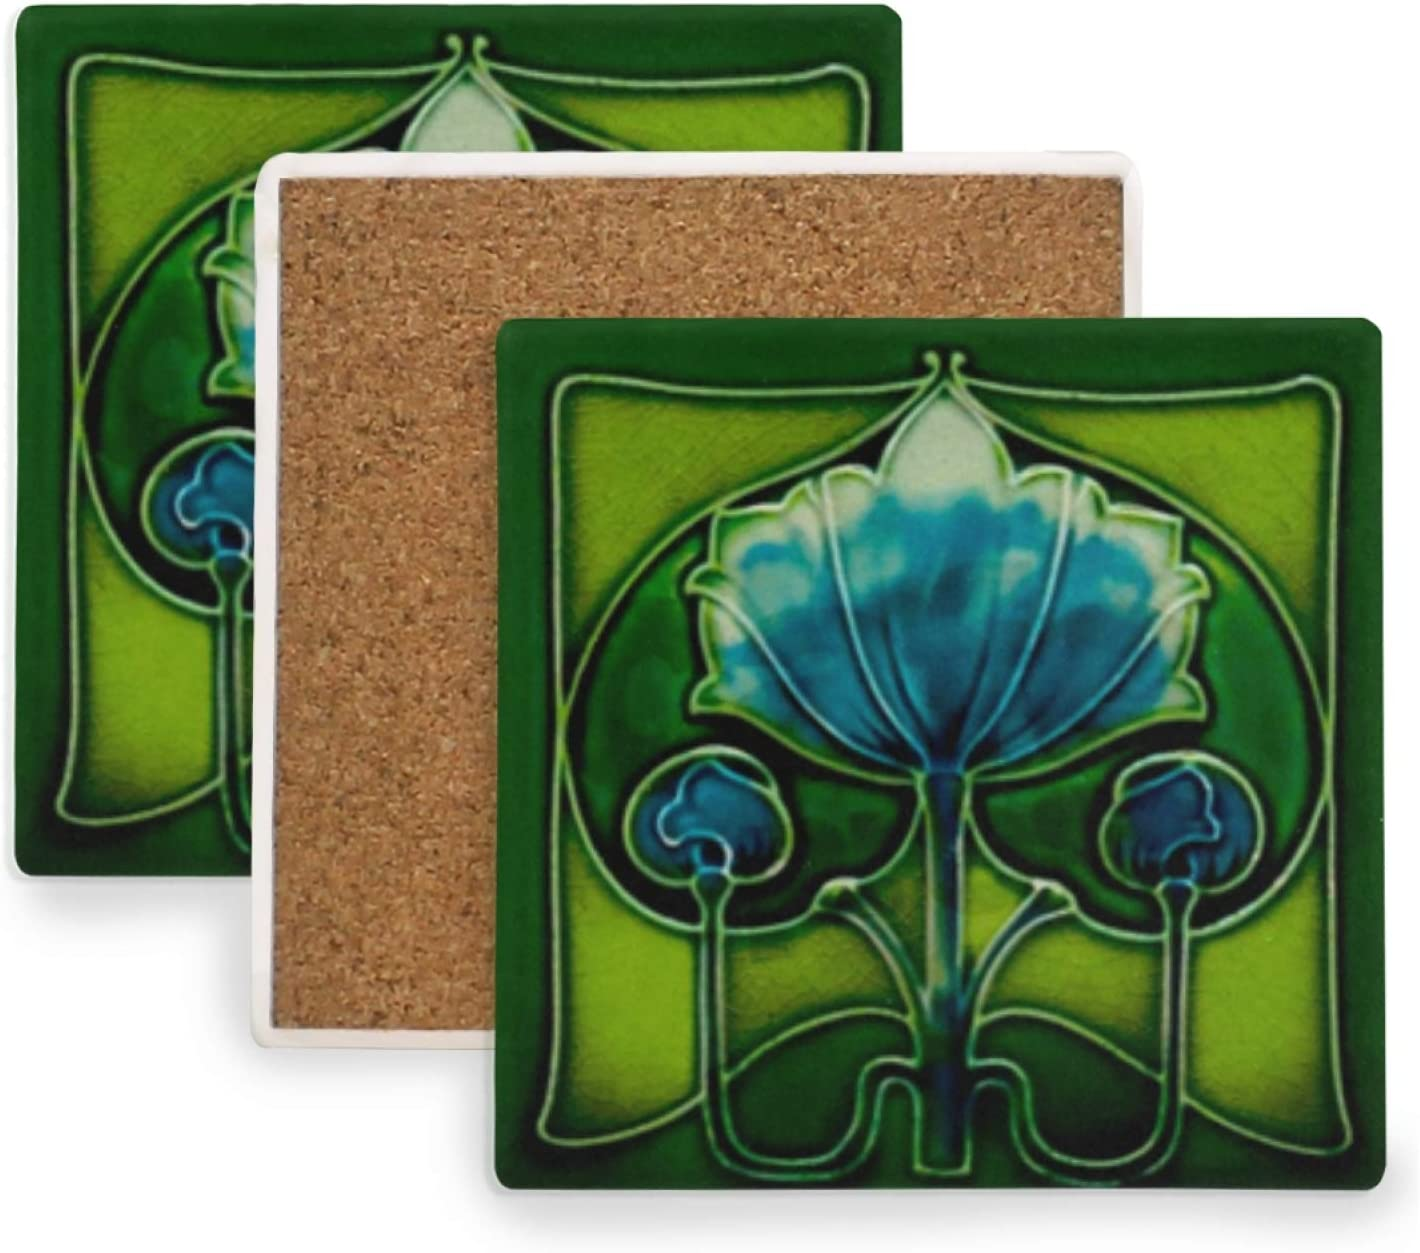 Set of 4 Coasters for Drinks, Art Nouveau Blue Flower Absorbing Square Ceramic Coaster, Cork Base,Tabletop Protection Mat for Mugs and Cups,Office,Kitchen